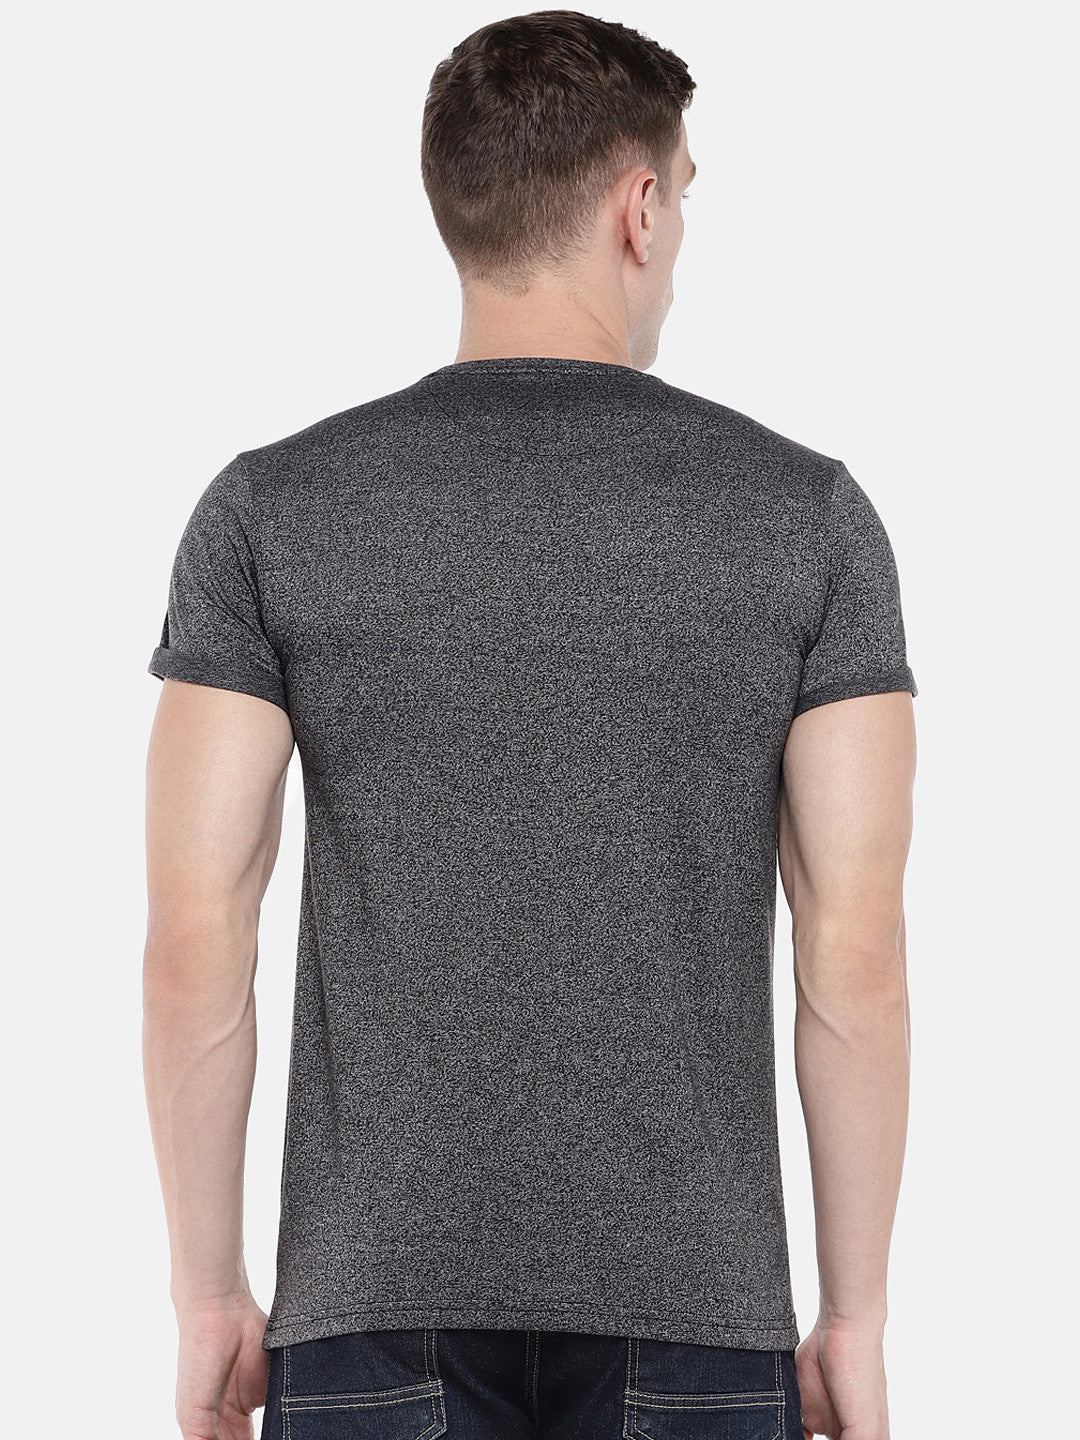 Grey Solid Round Neck T-shirt-3